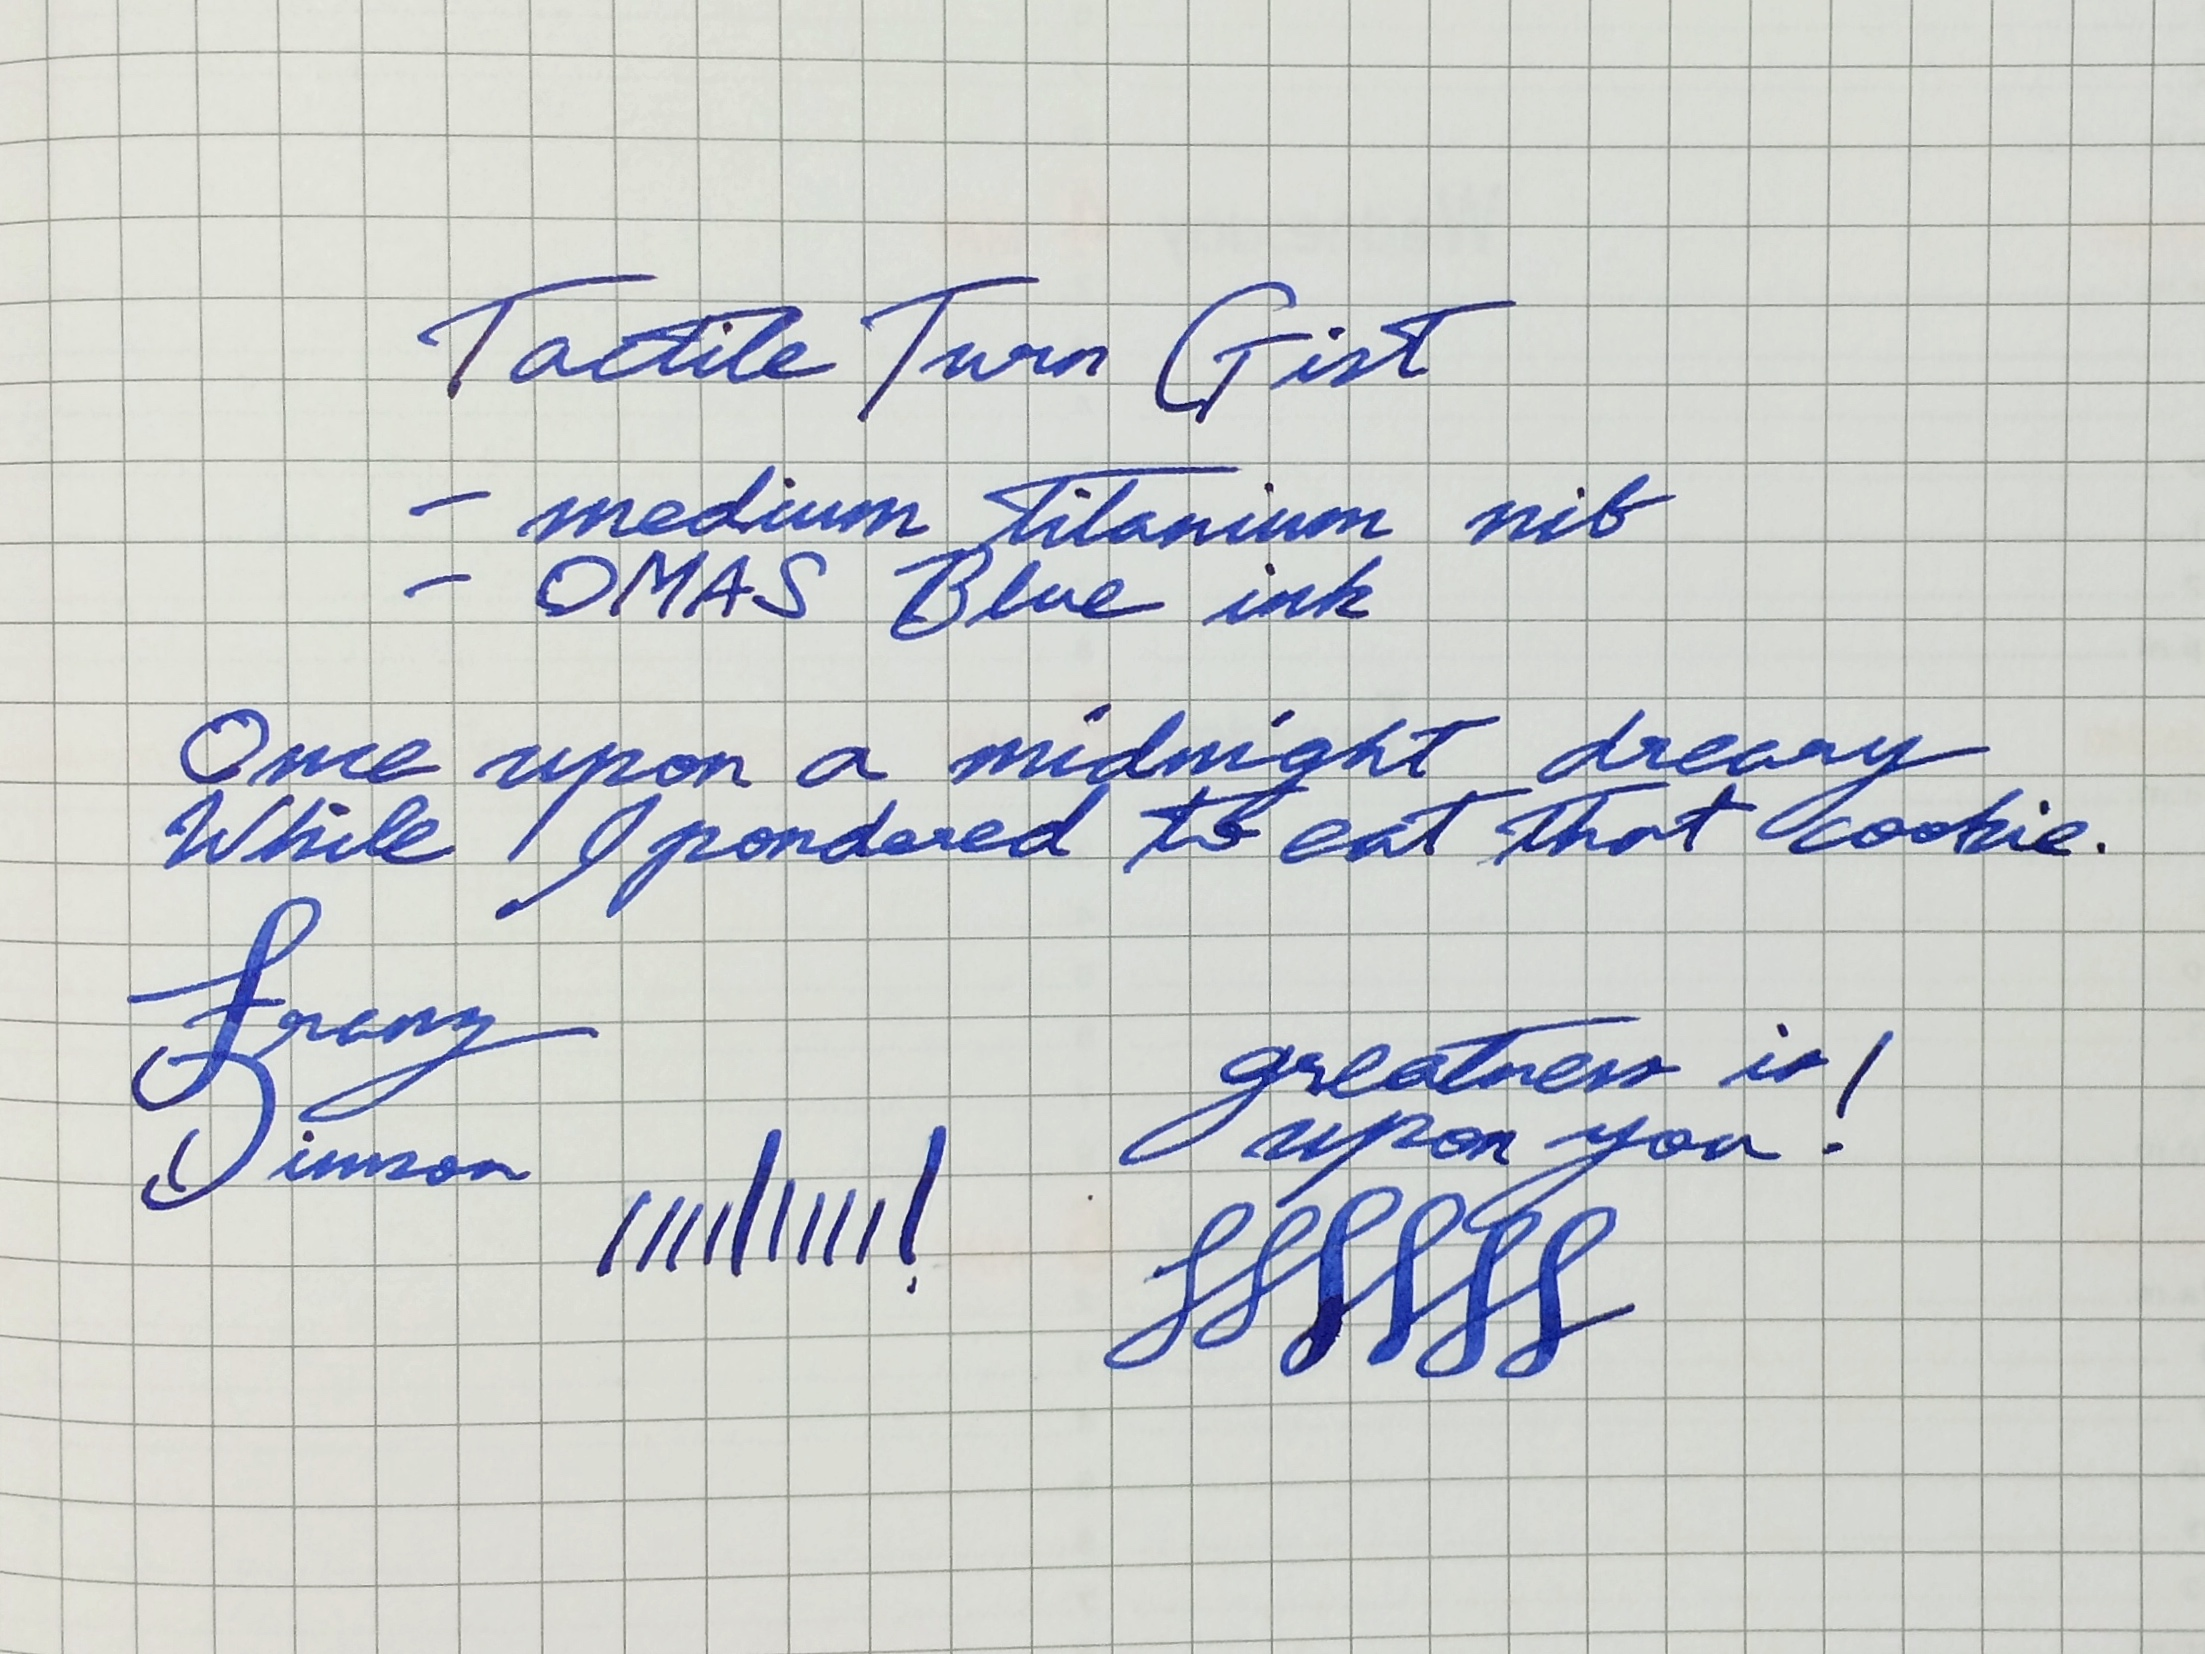 Franz's writing sample of the Tactile Turn Gist